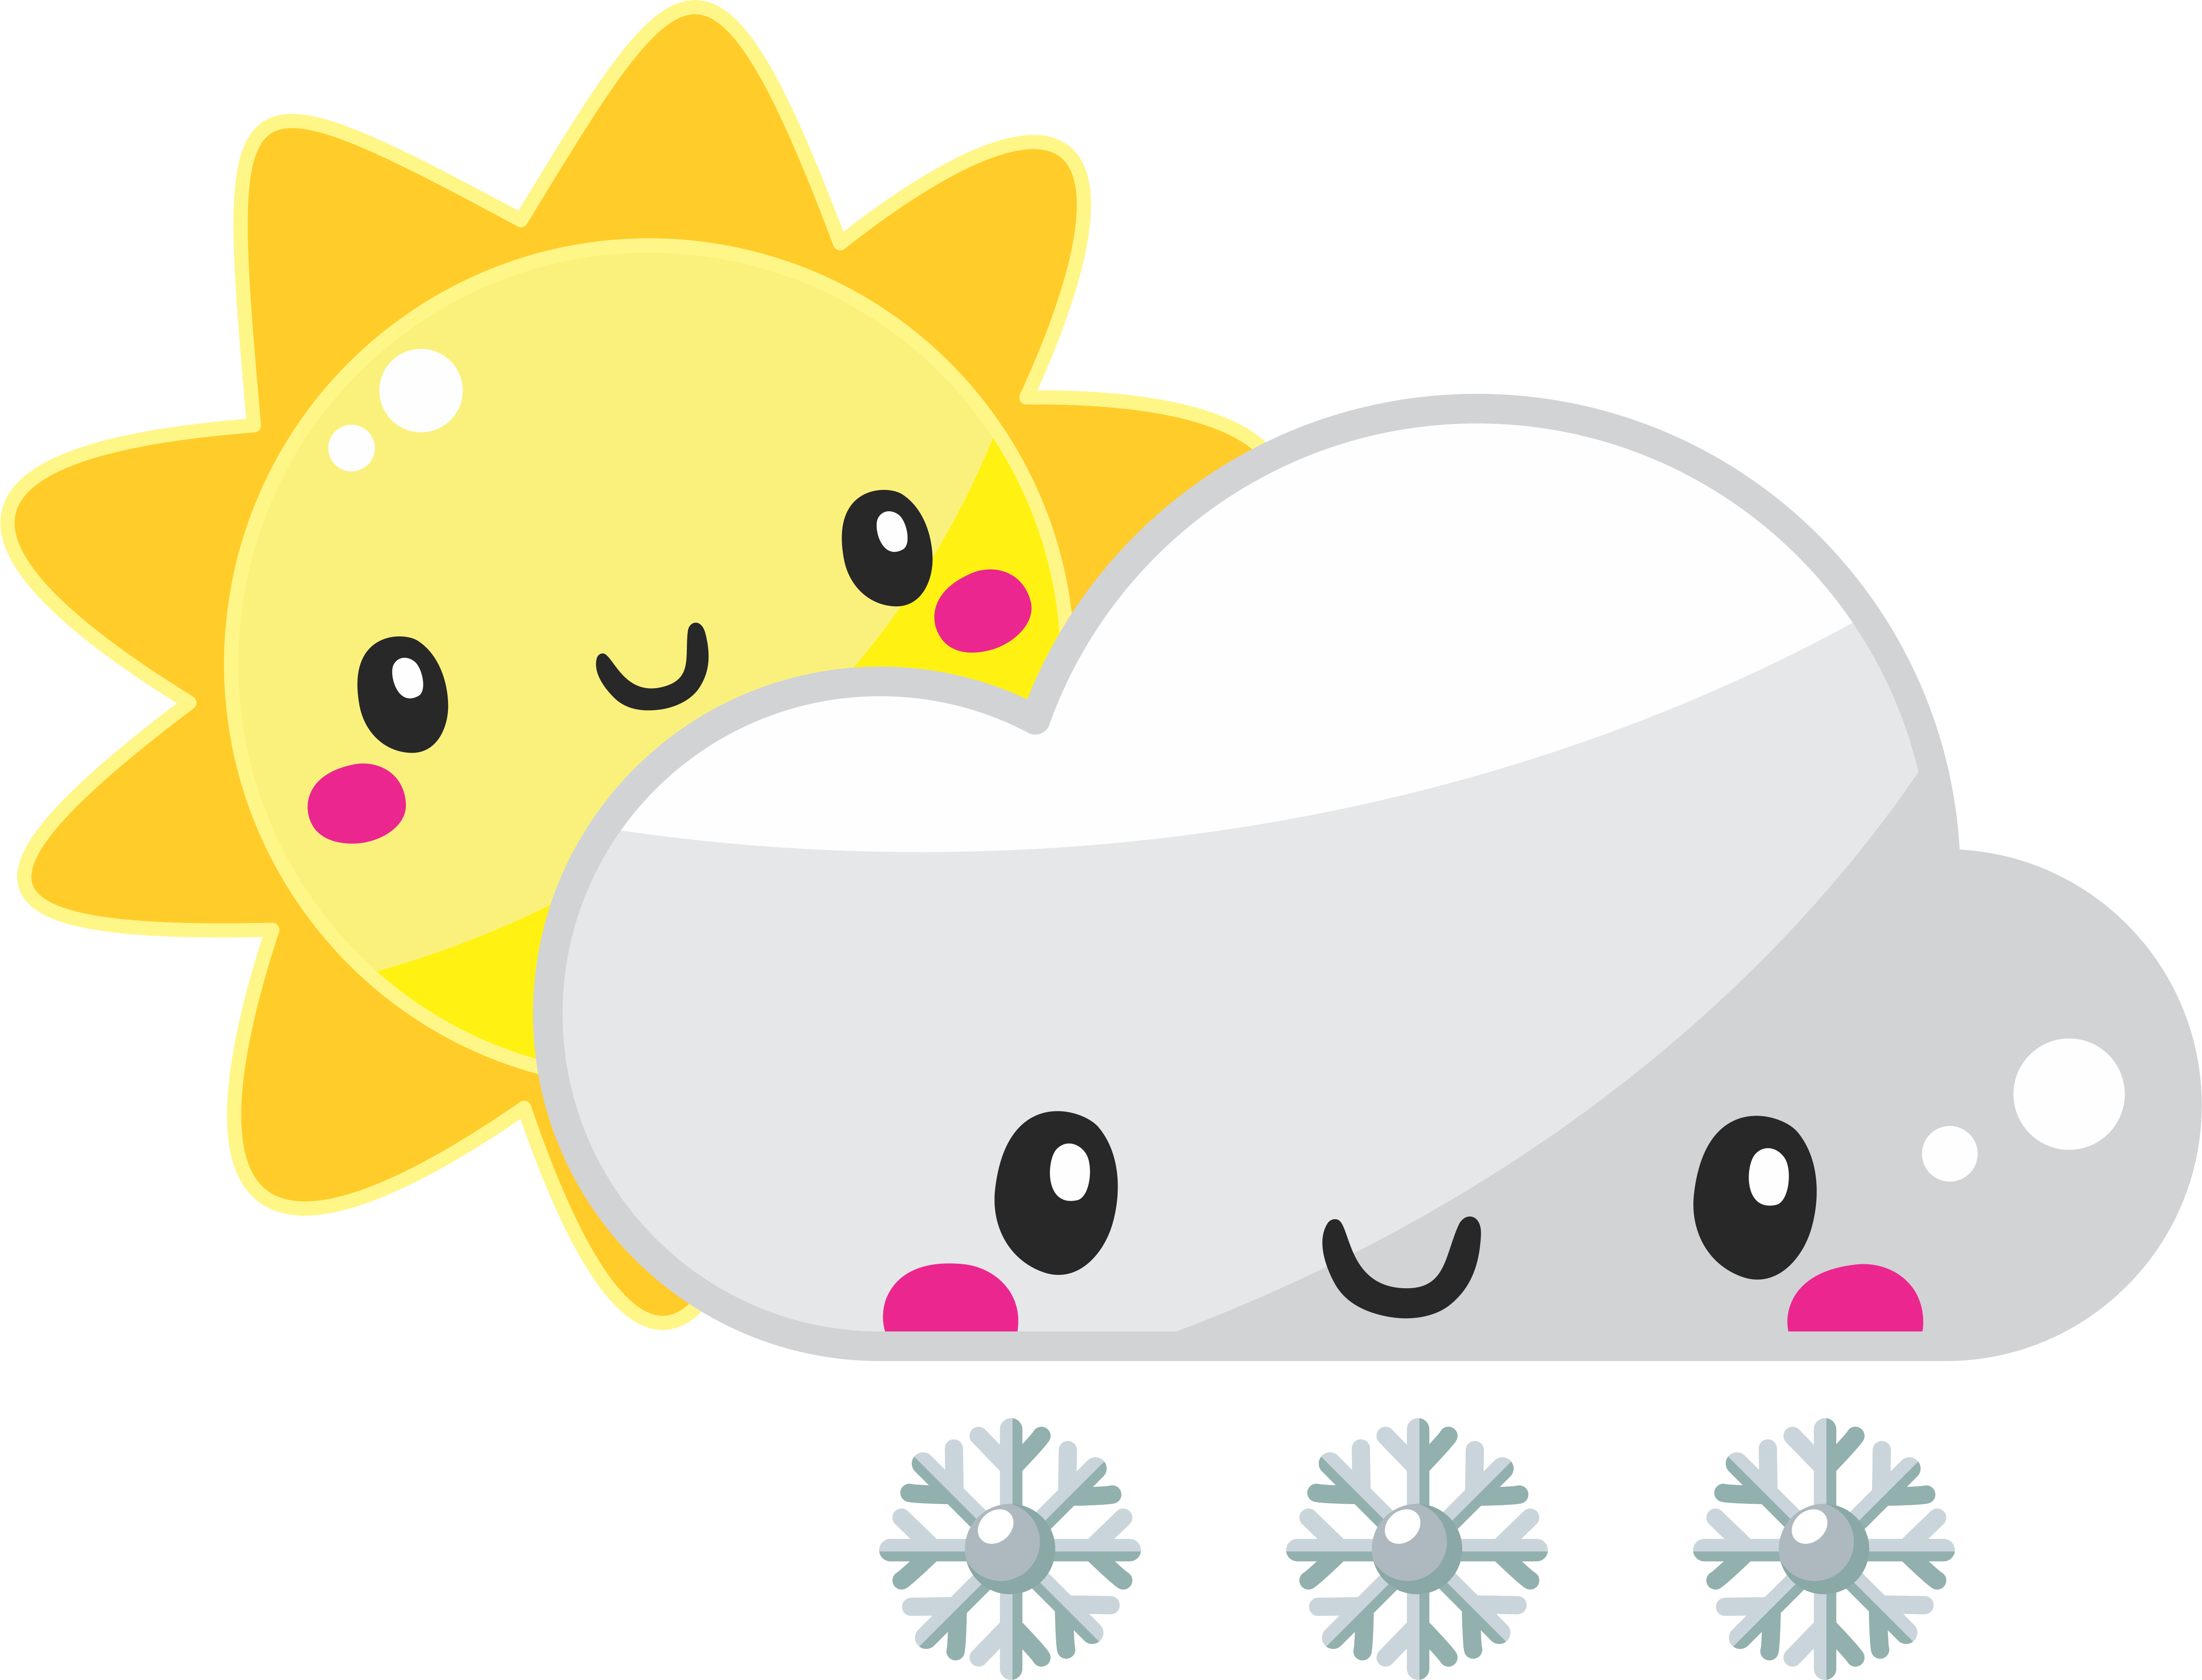 Ready to ship icons. Sunny clipart weather philippine